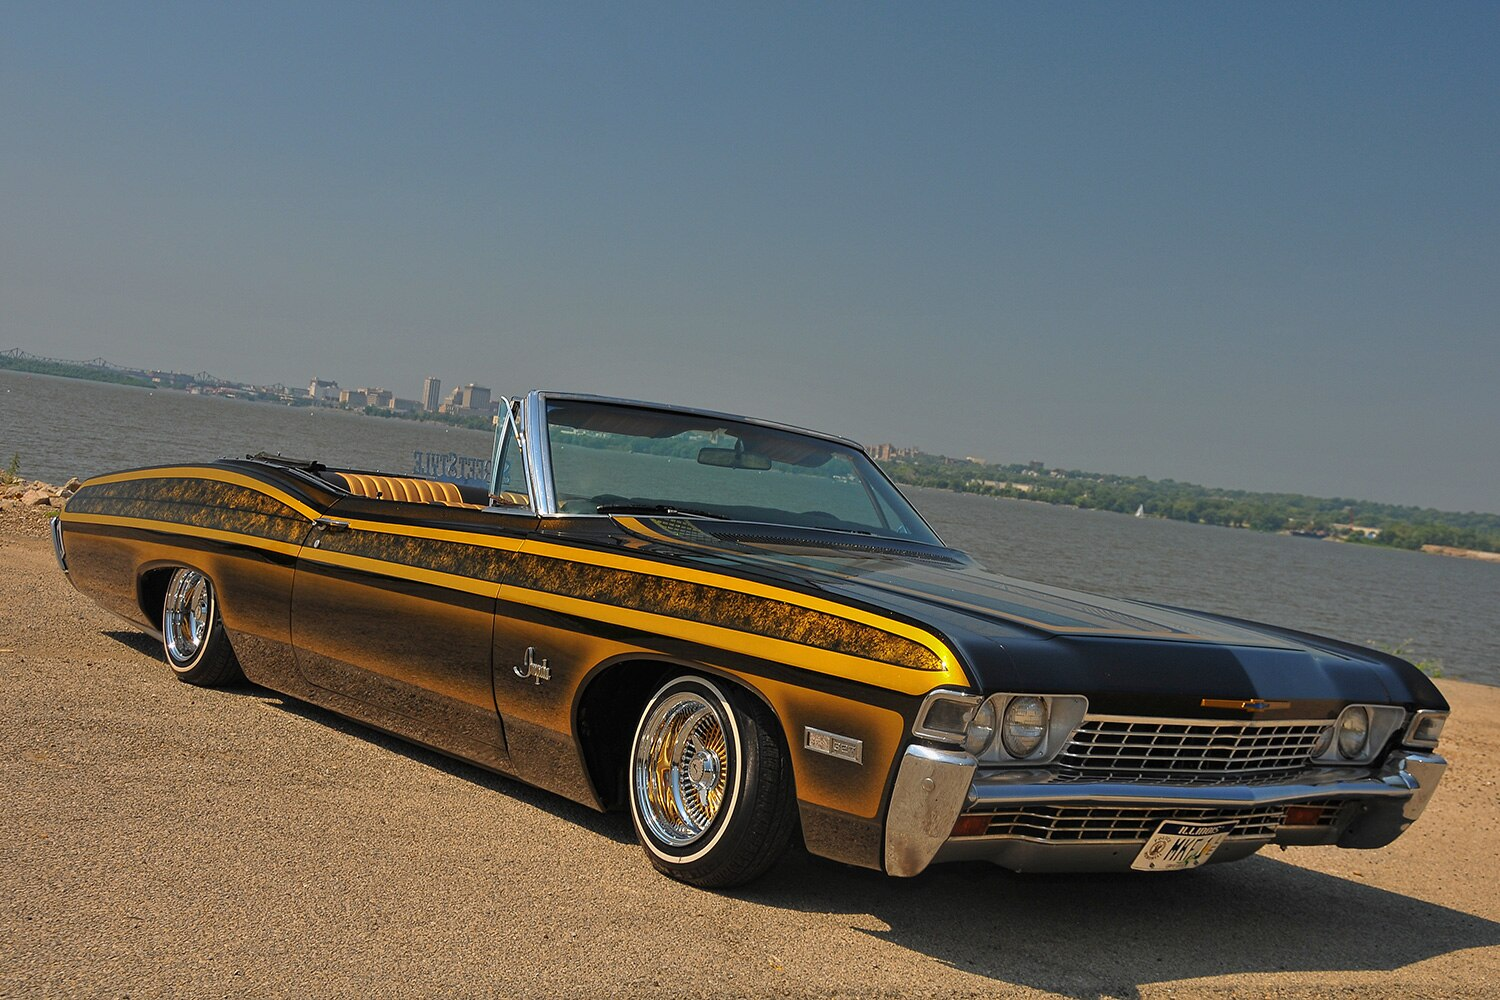 1968-chevrolet-impala-front-right-side-view1